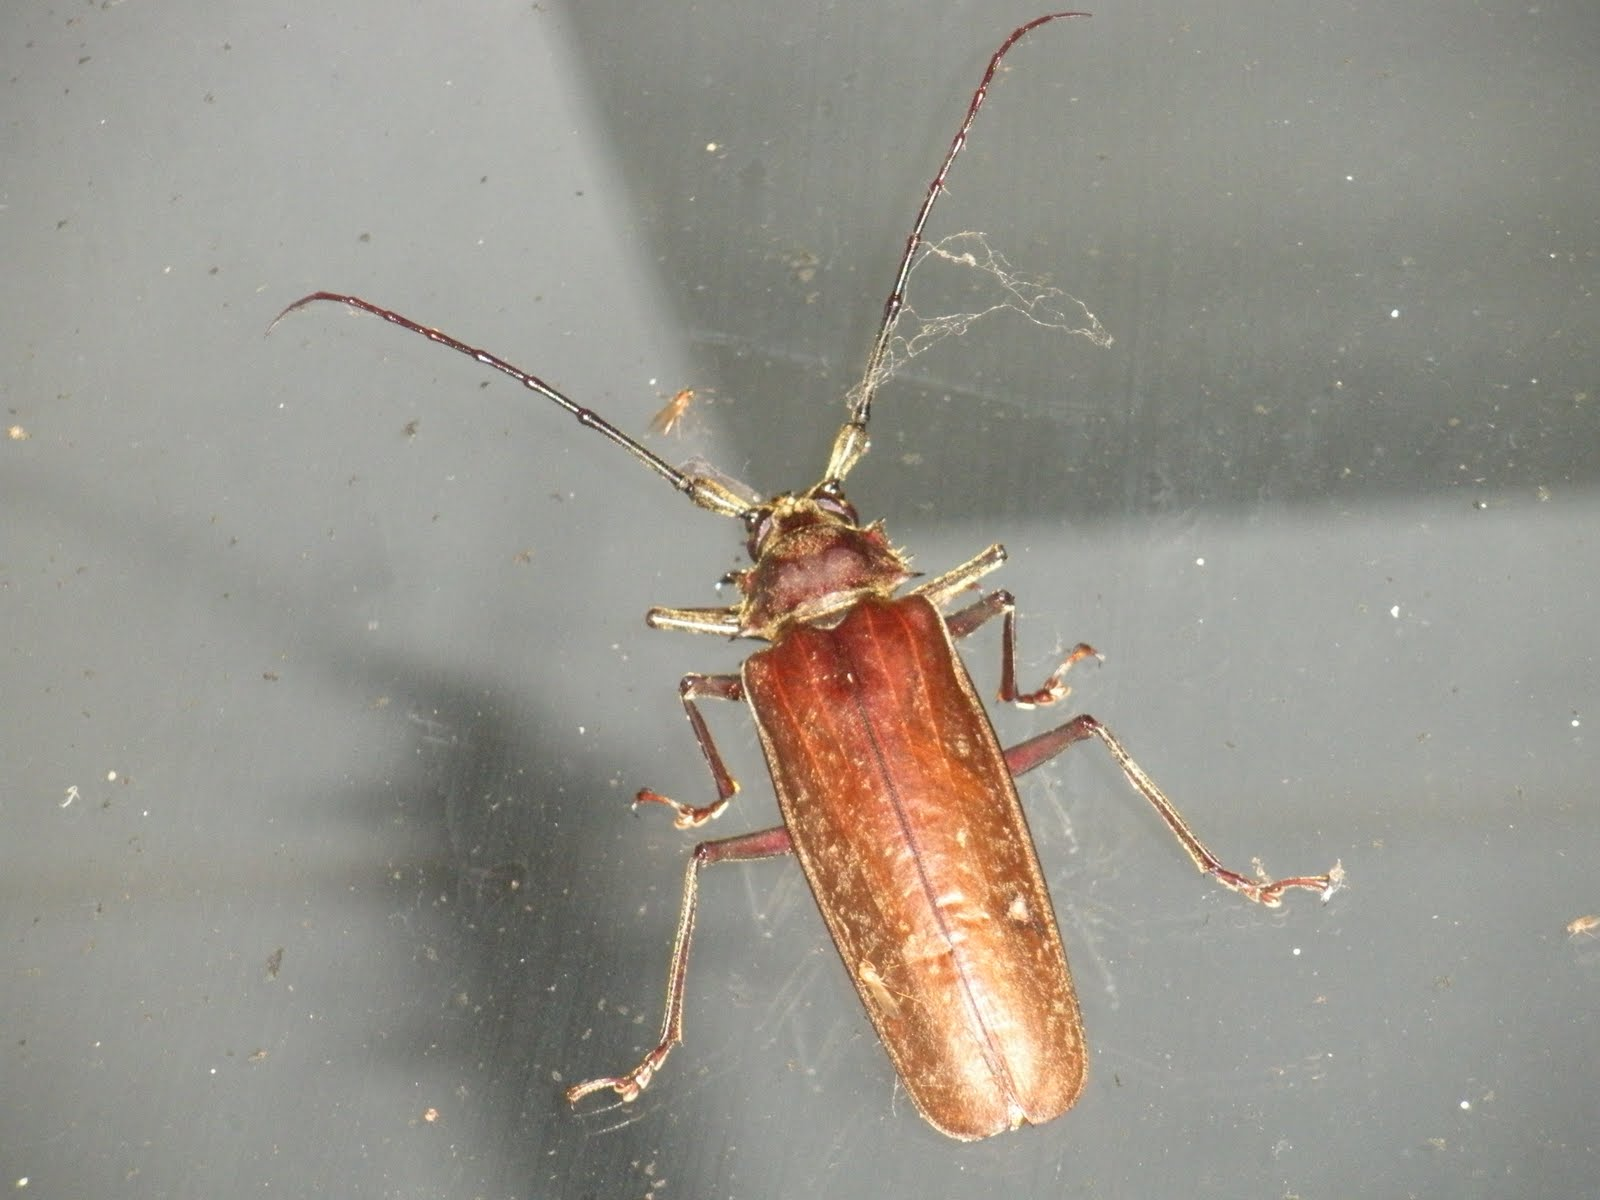 What are bugs that look like roaches?